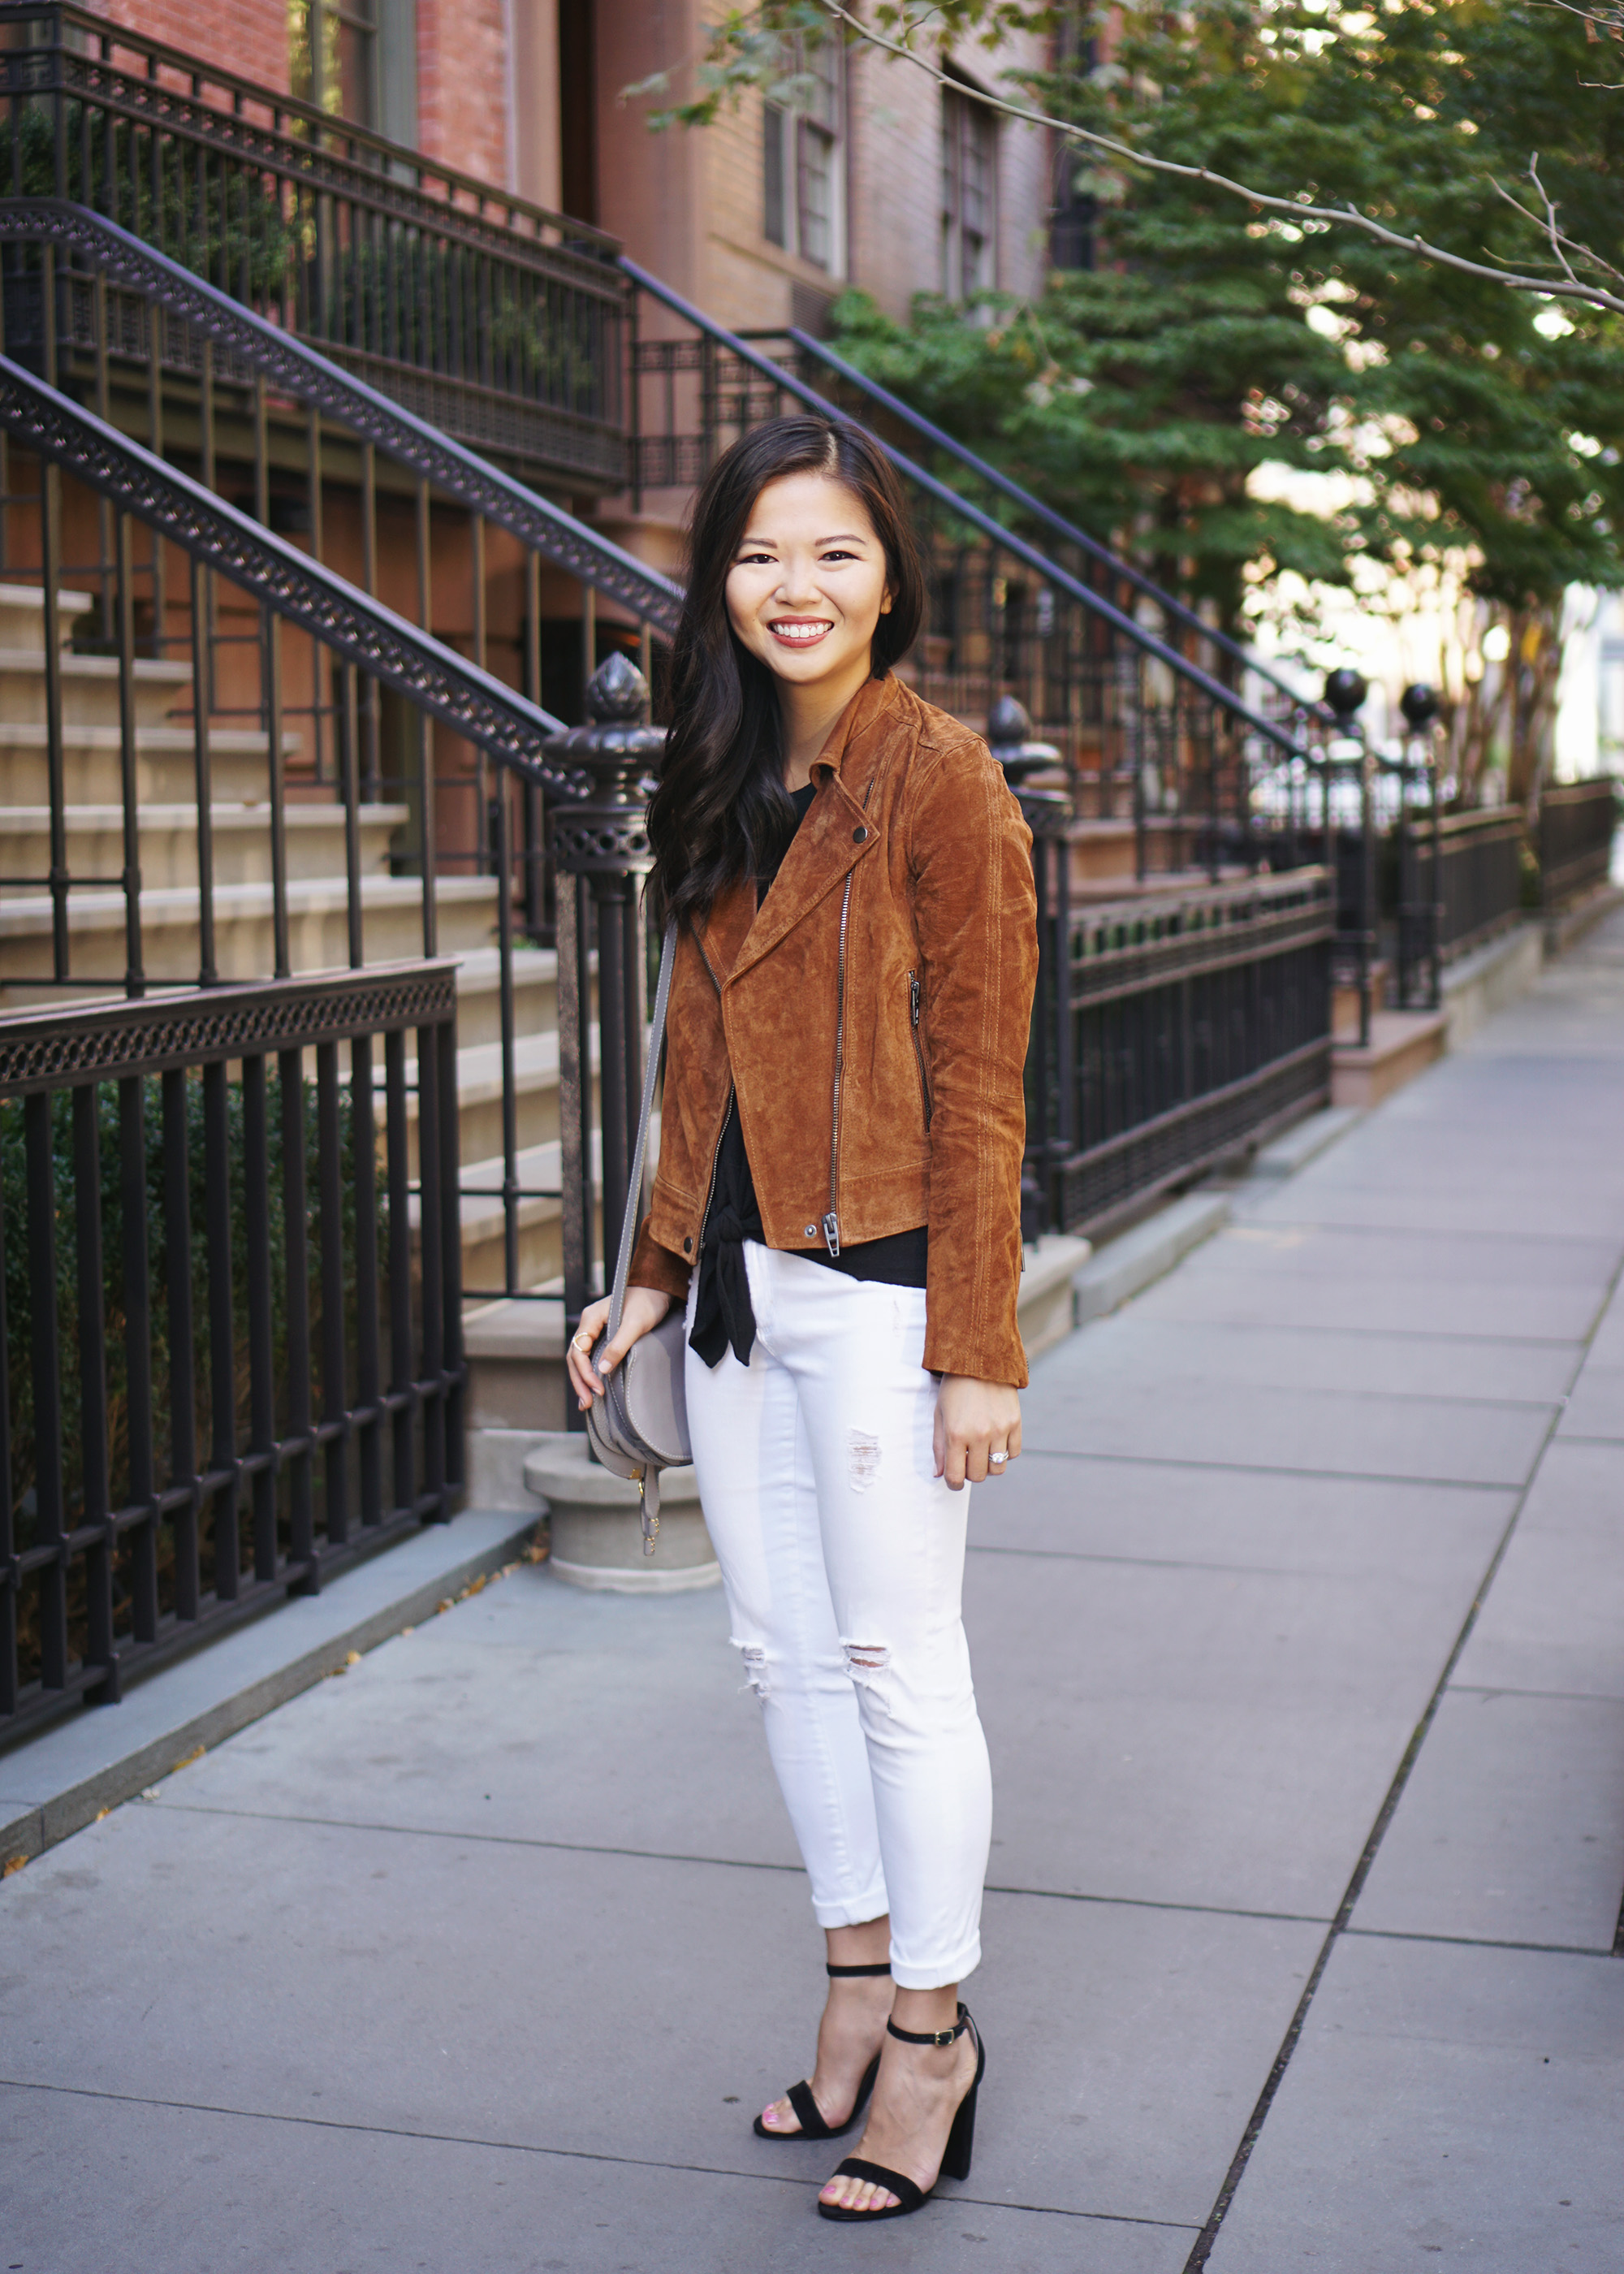 Fall Outfit Inspiration: What to Wear with a Brown Suede Moto Jacket